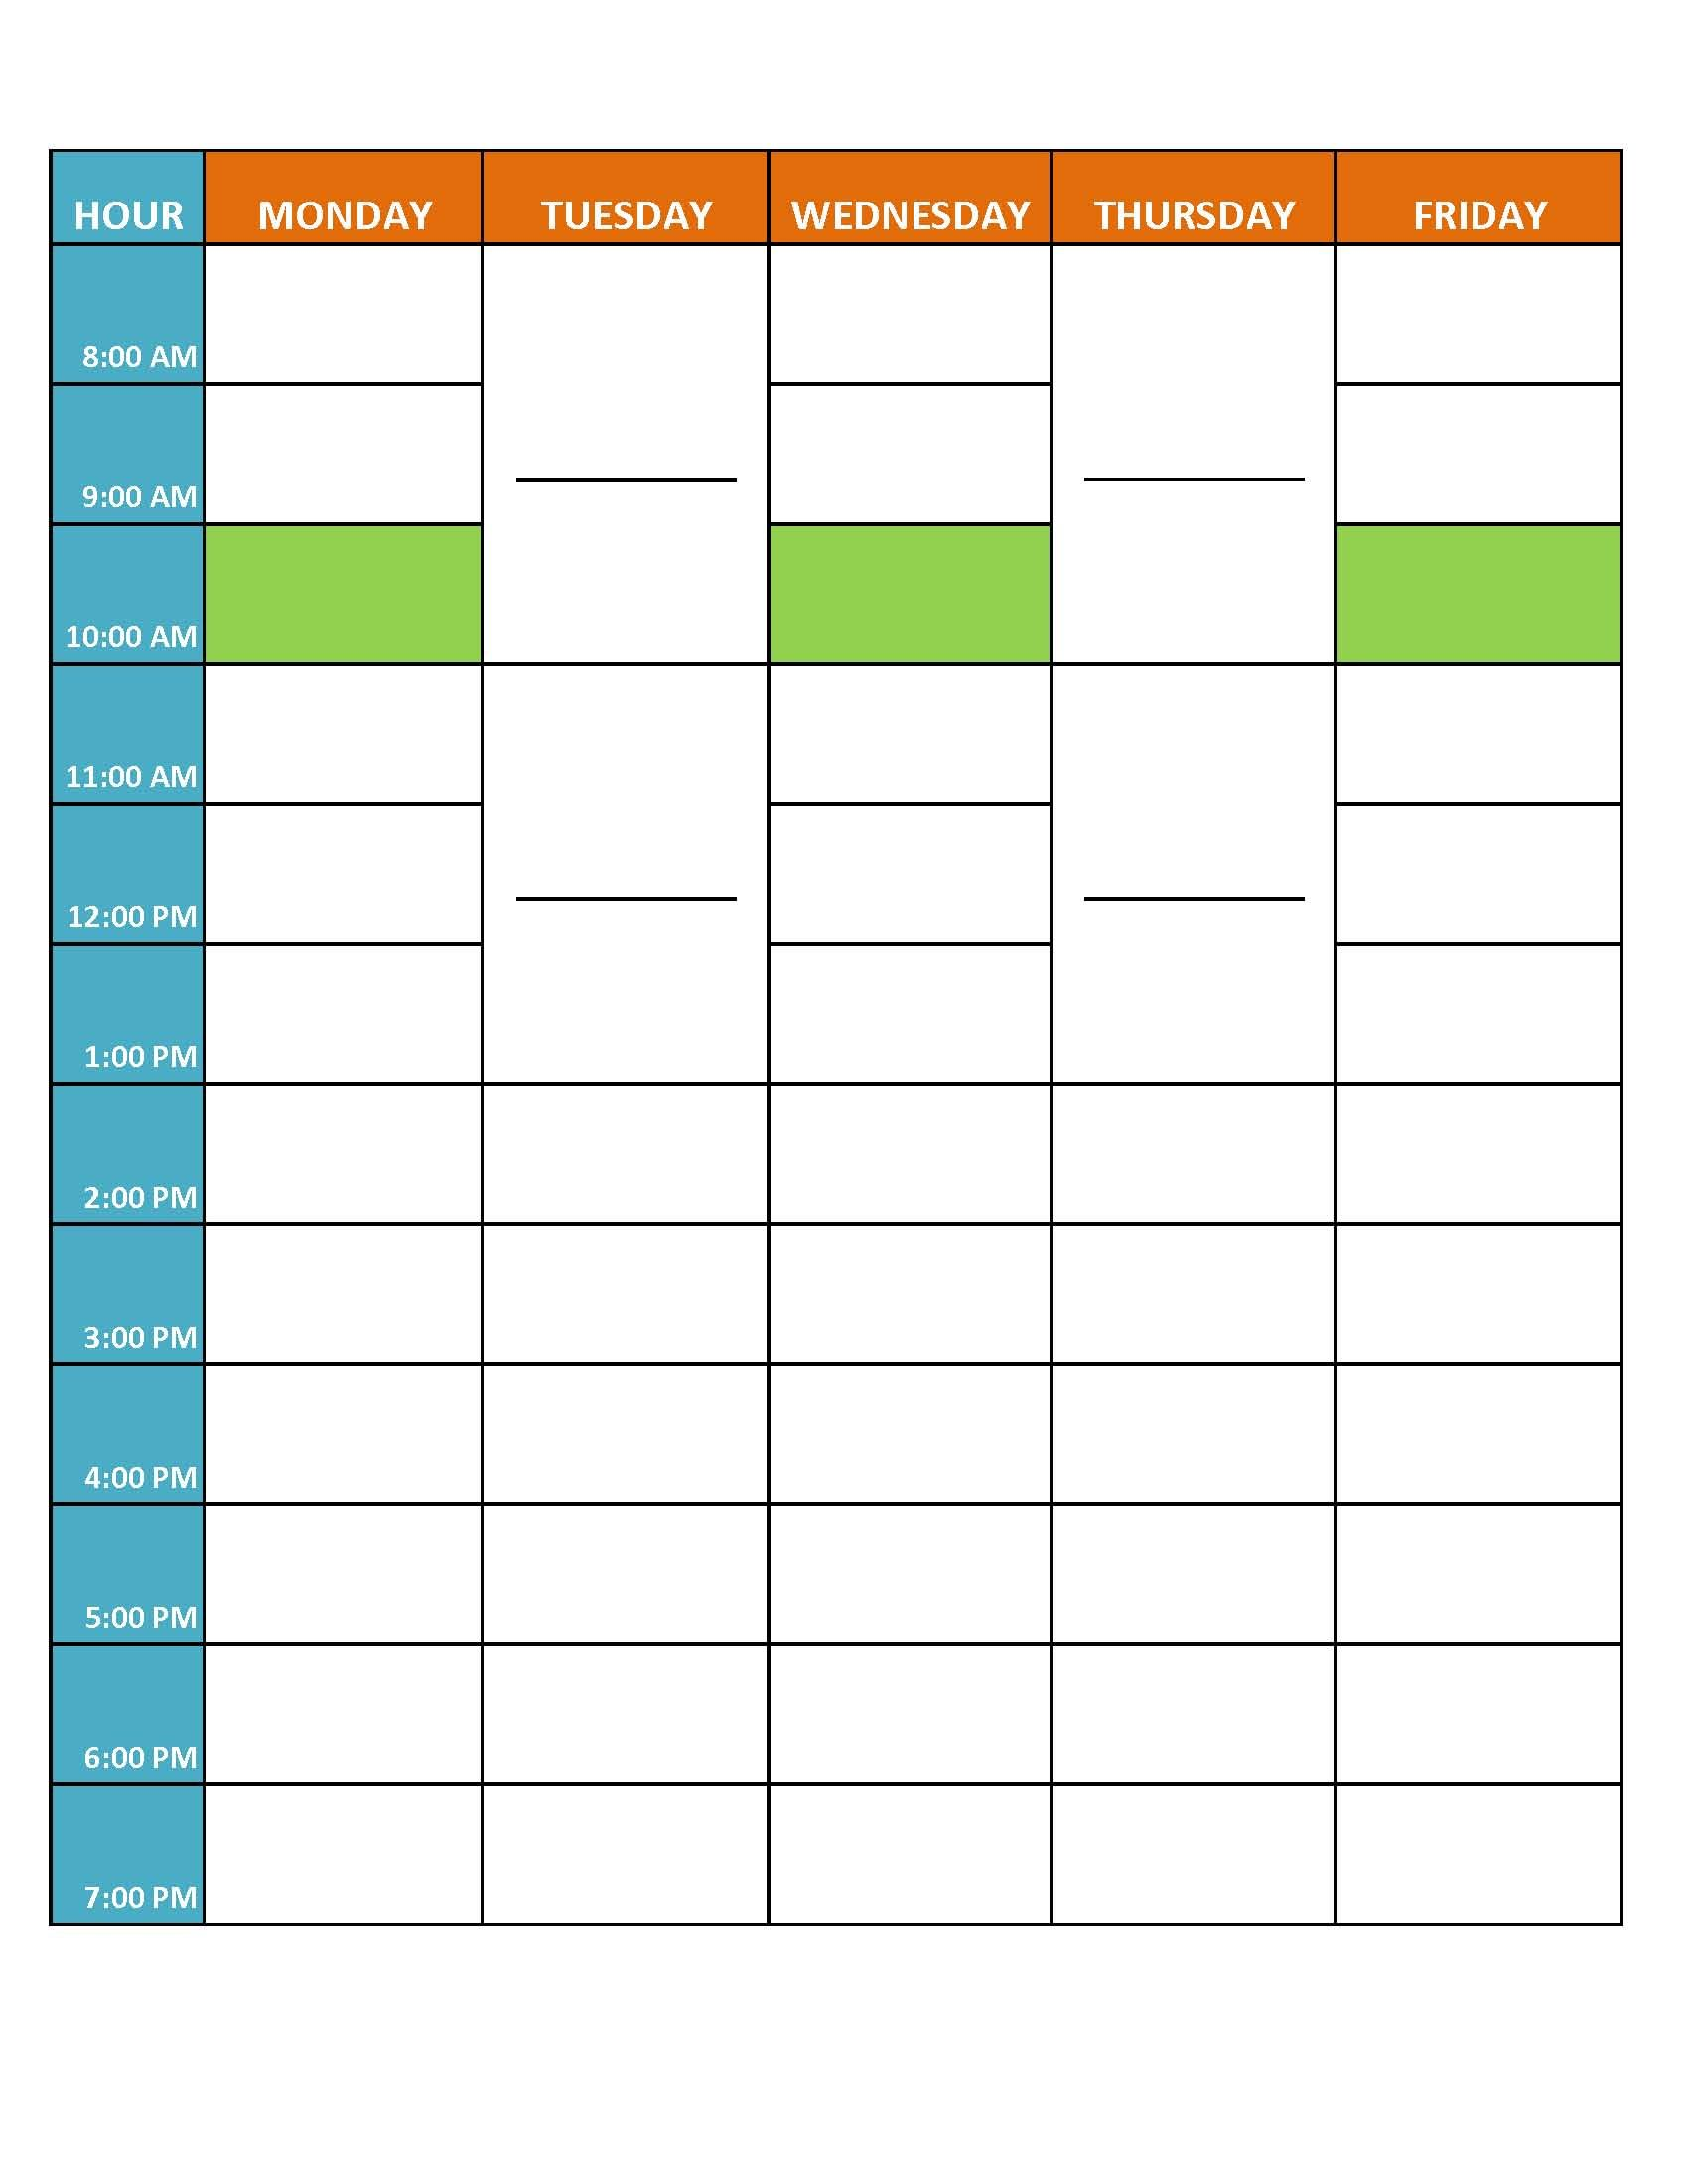 blank weekly schedule for our time management class first year